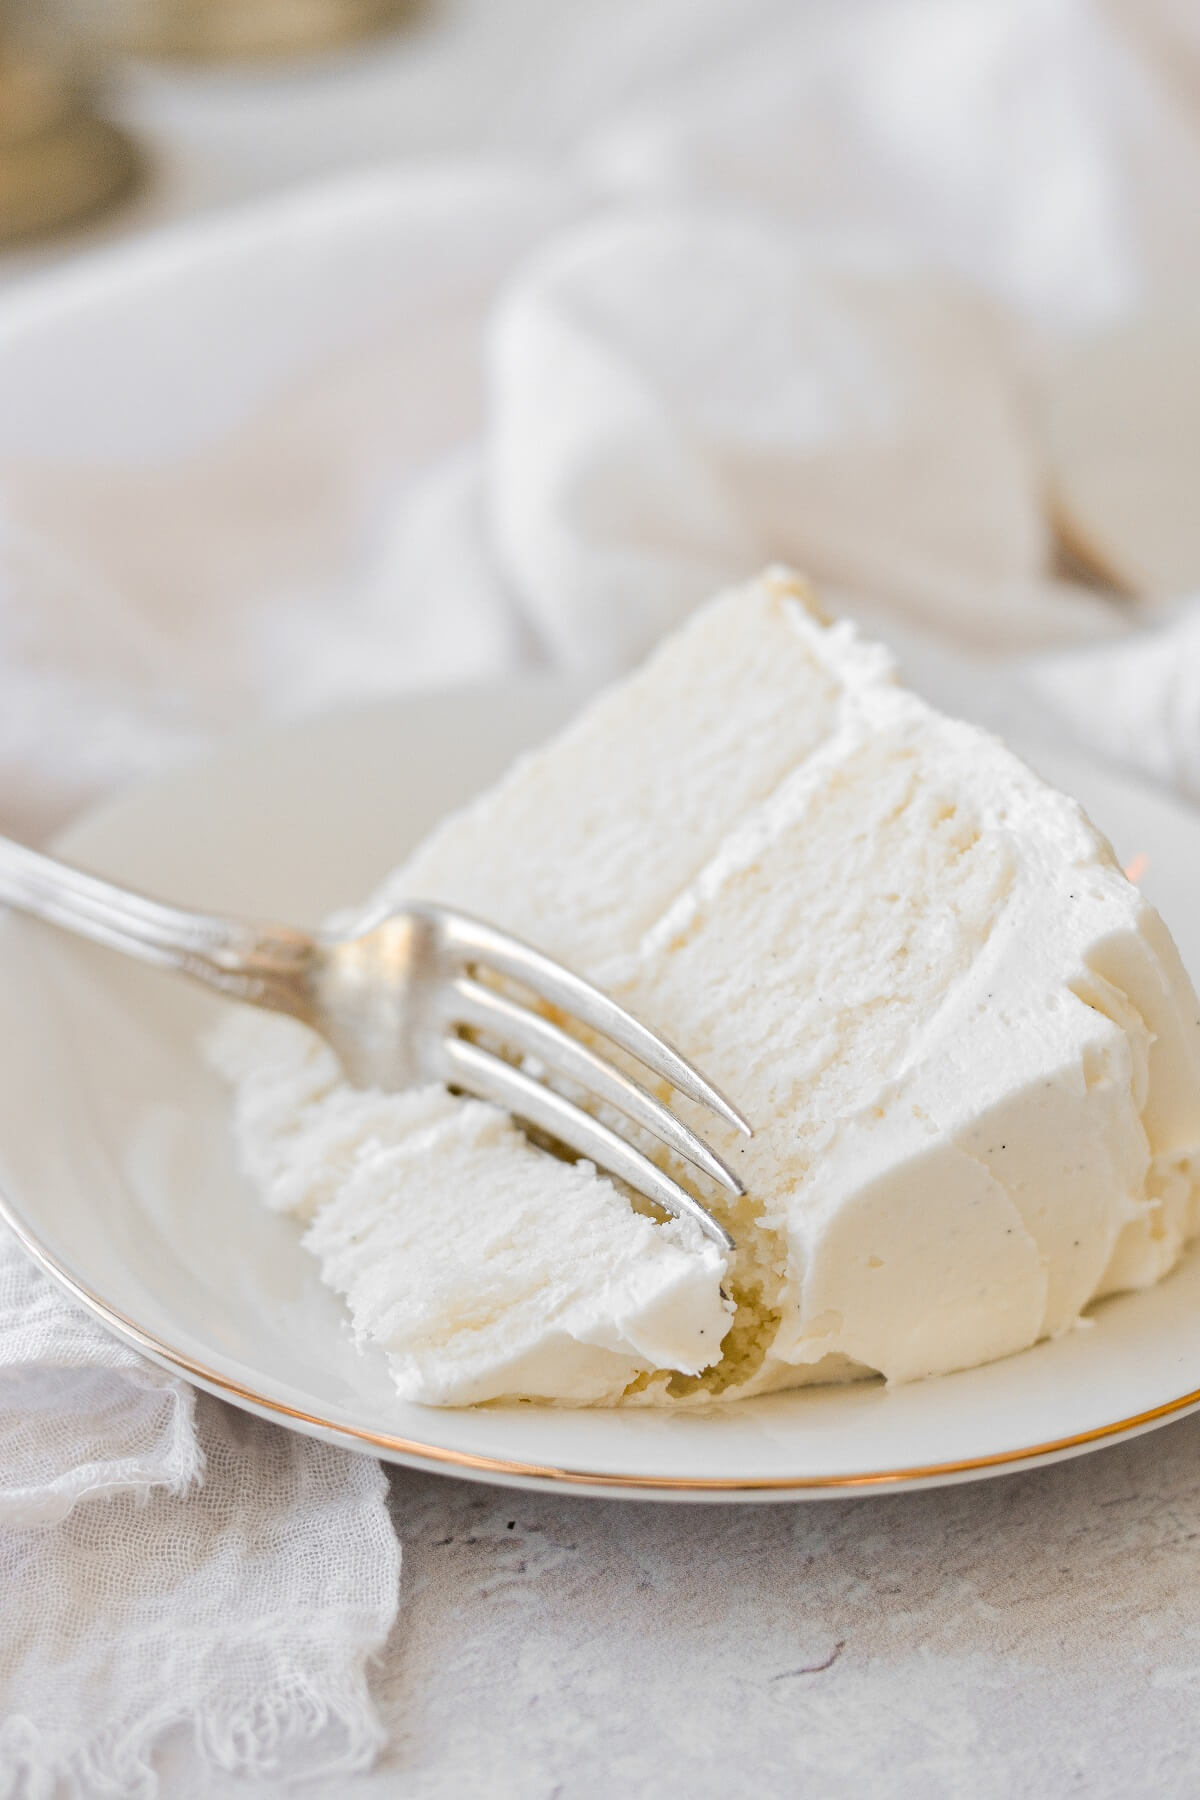 A slice of almond wedding cake with one bite taken.